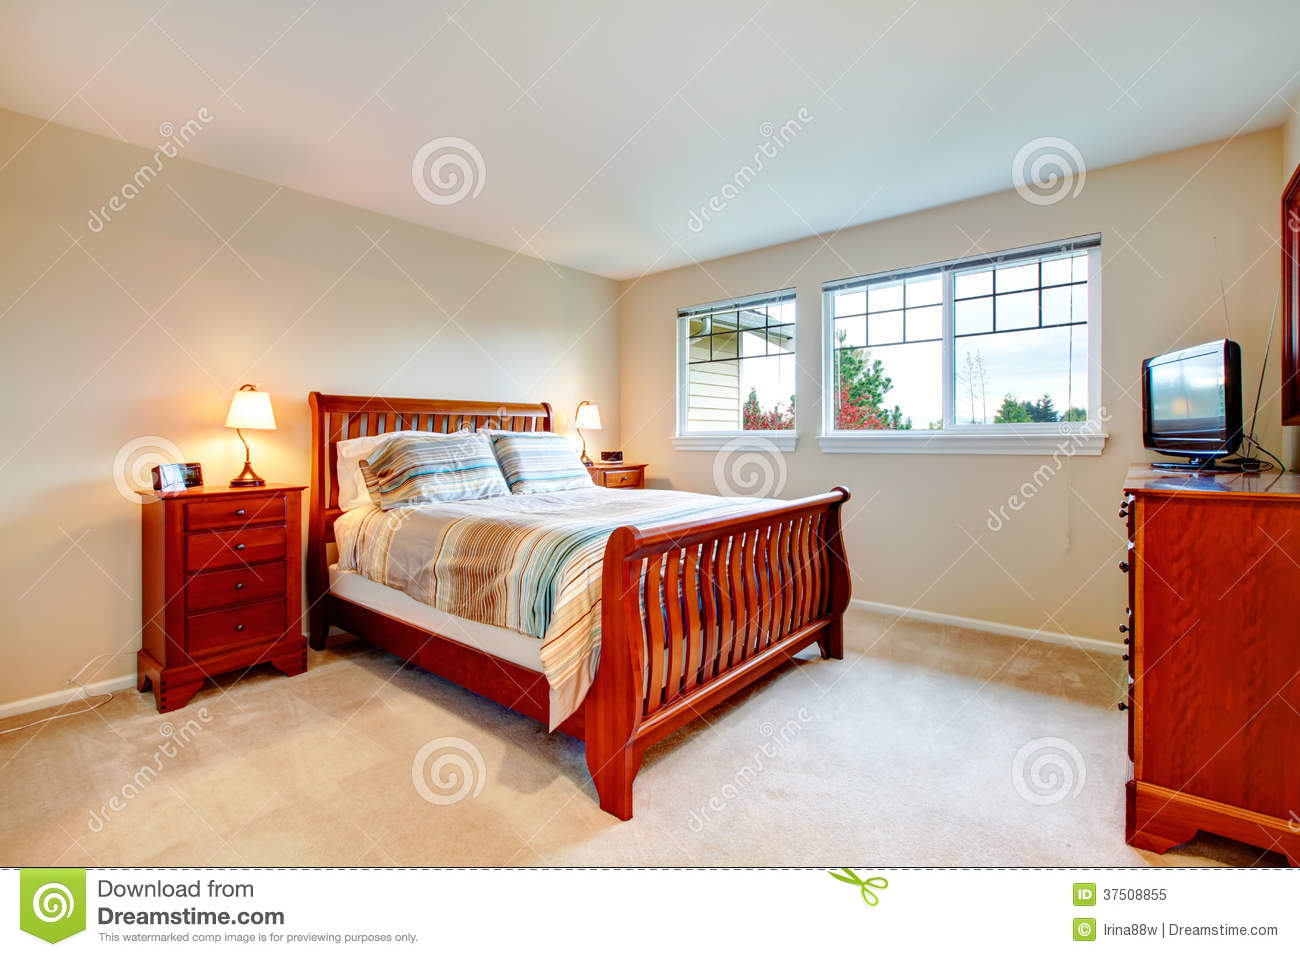 Warm colors bedroom with wood furniture royalty free stock for Warm colors for small bedrooms